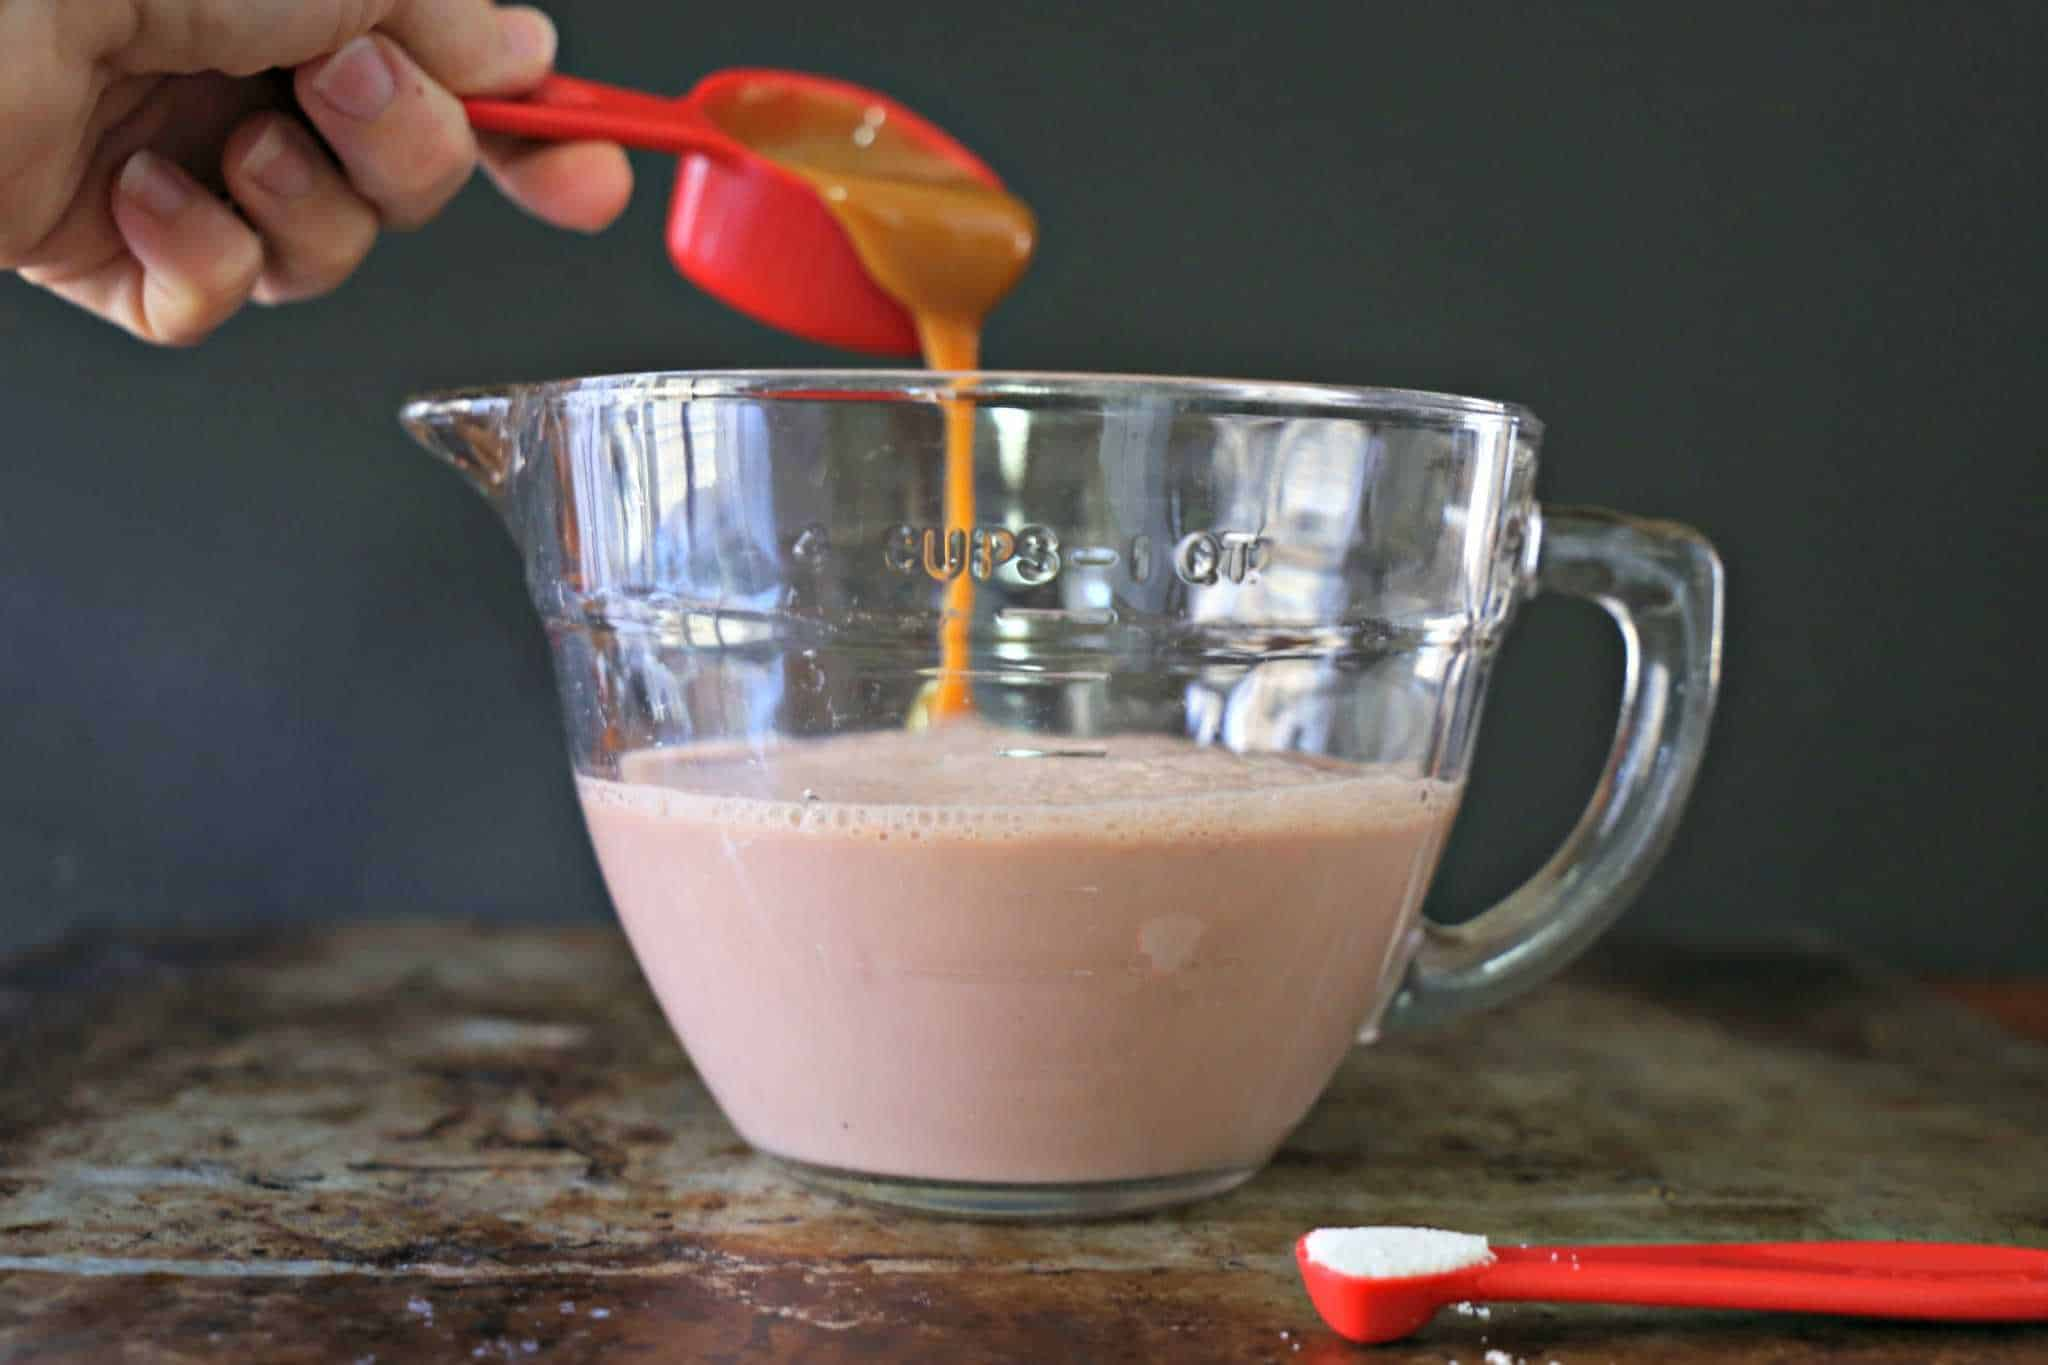 caramel being poured into chocolate milk